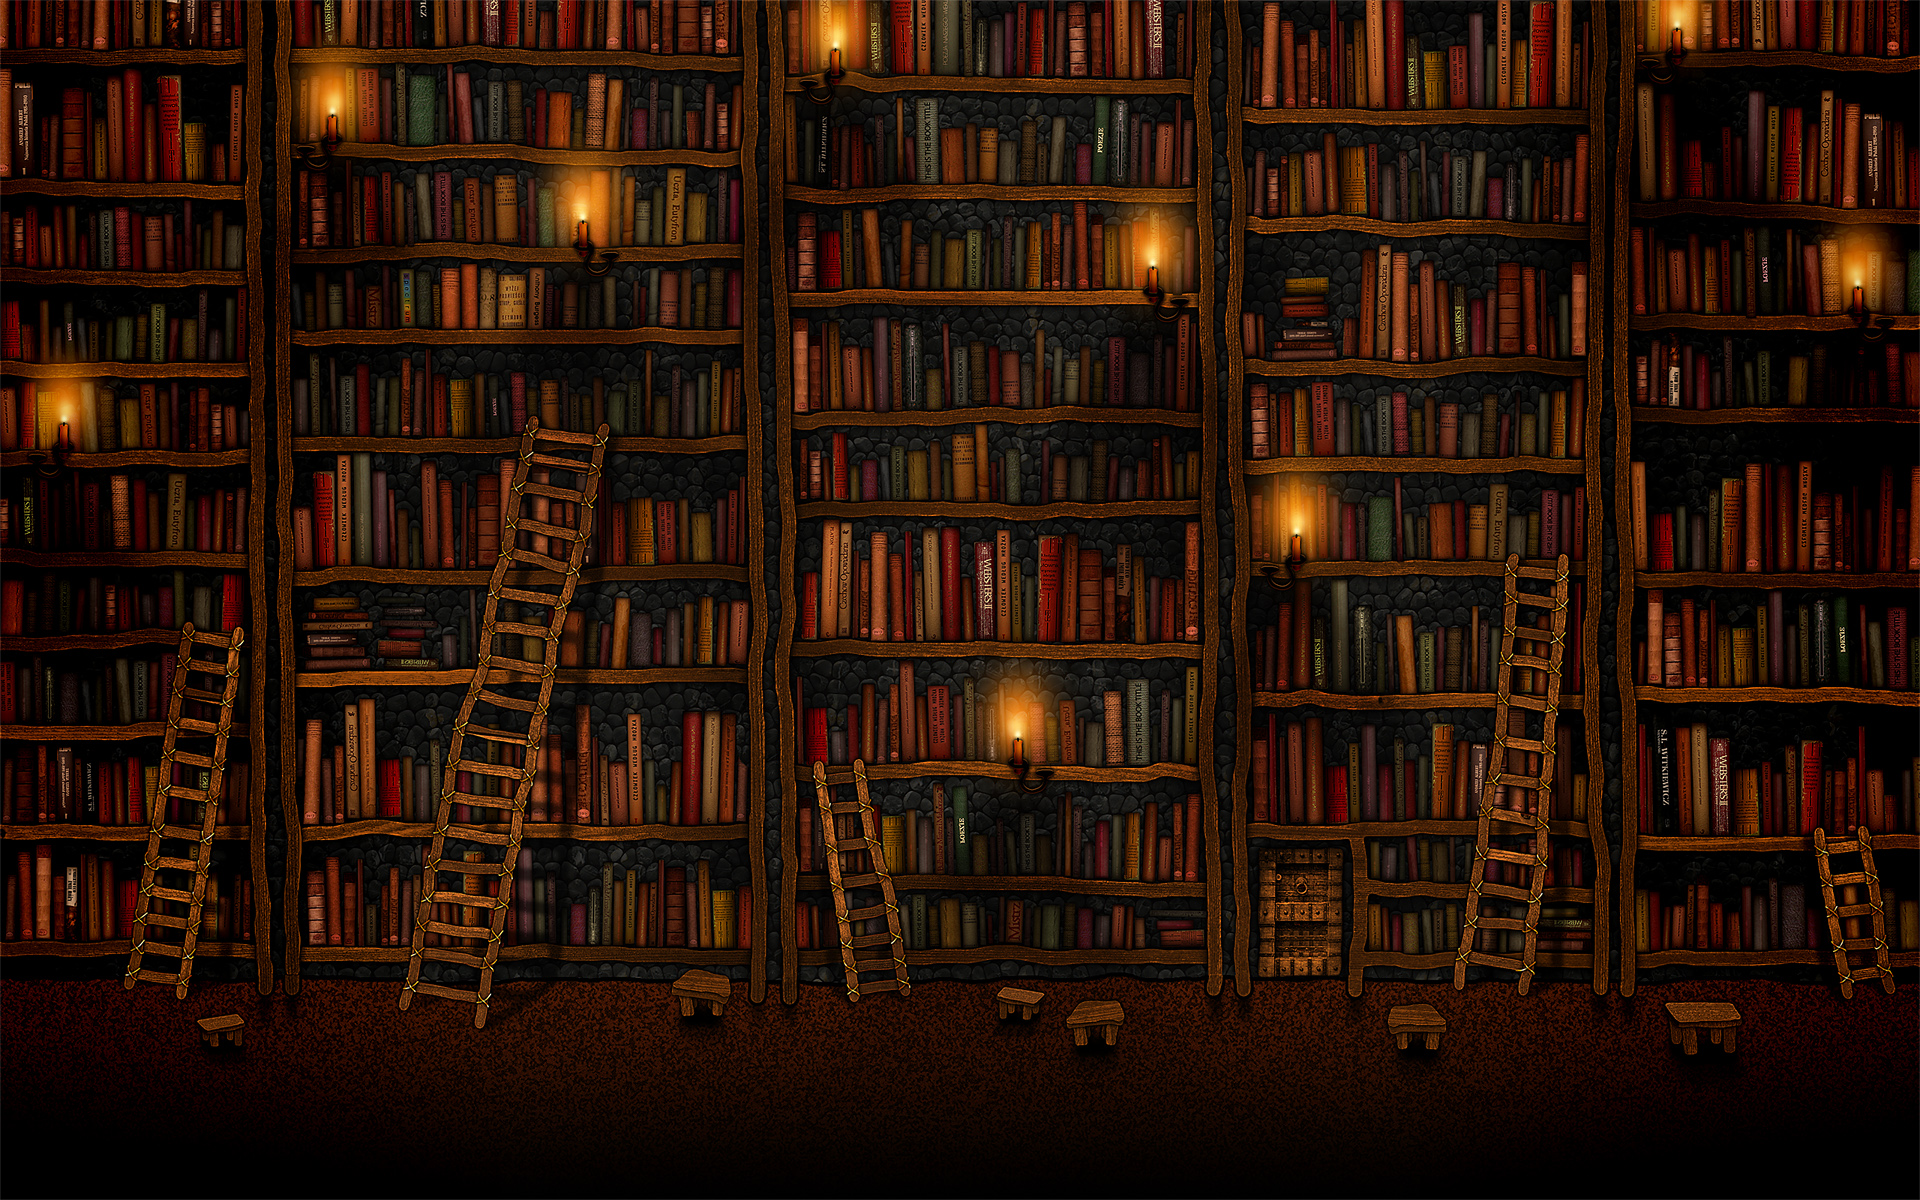 Man Made - book Wallpaper